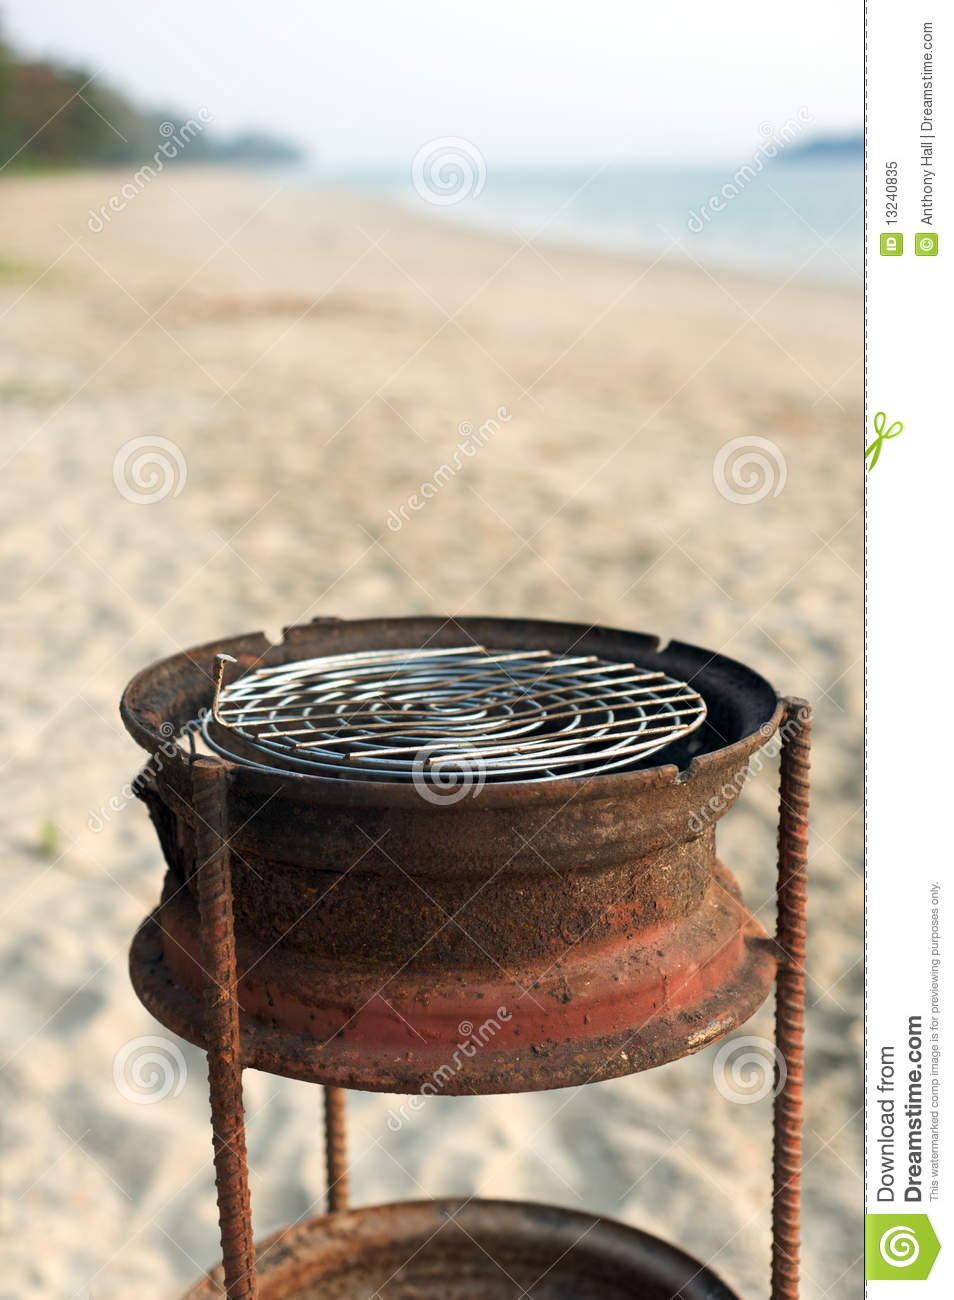 Barbecue Grill On Tropical Beach Royalty Free Stock Photo